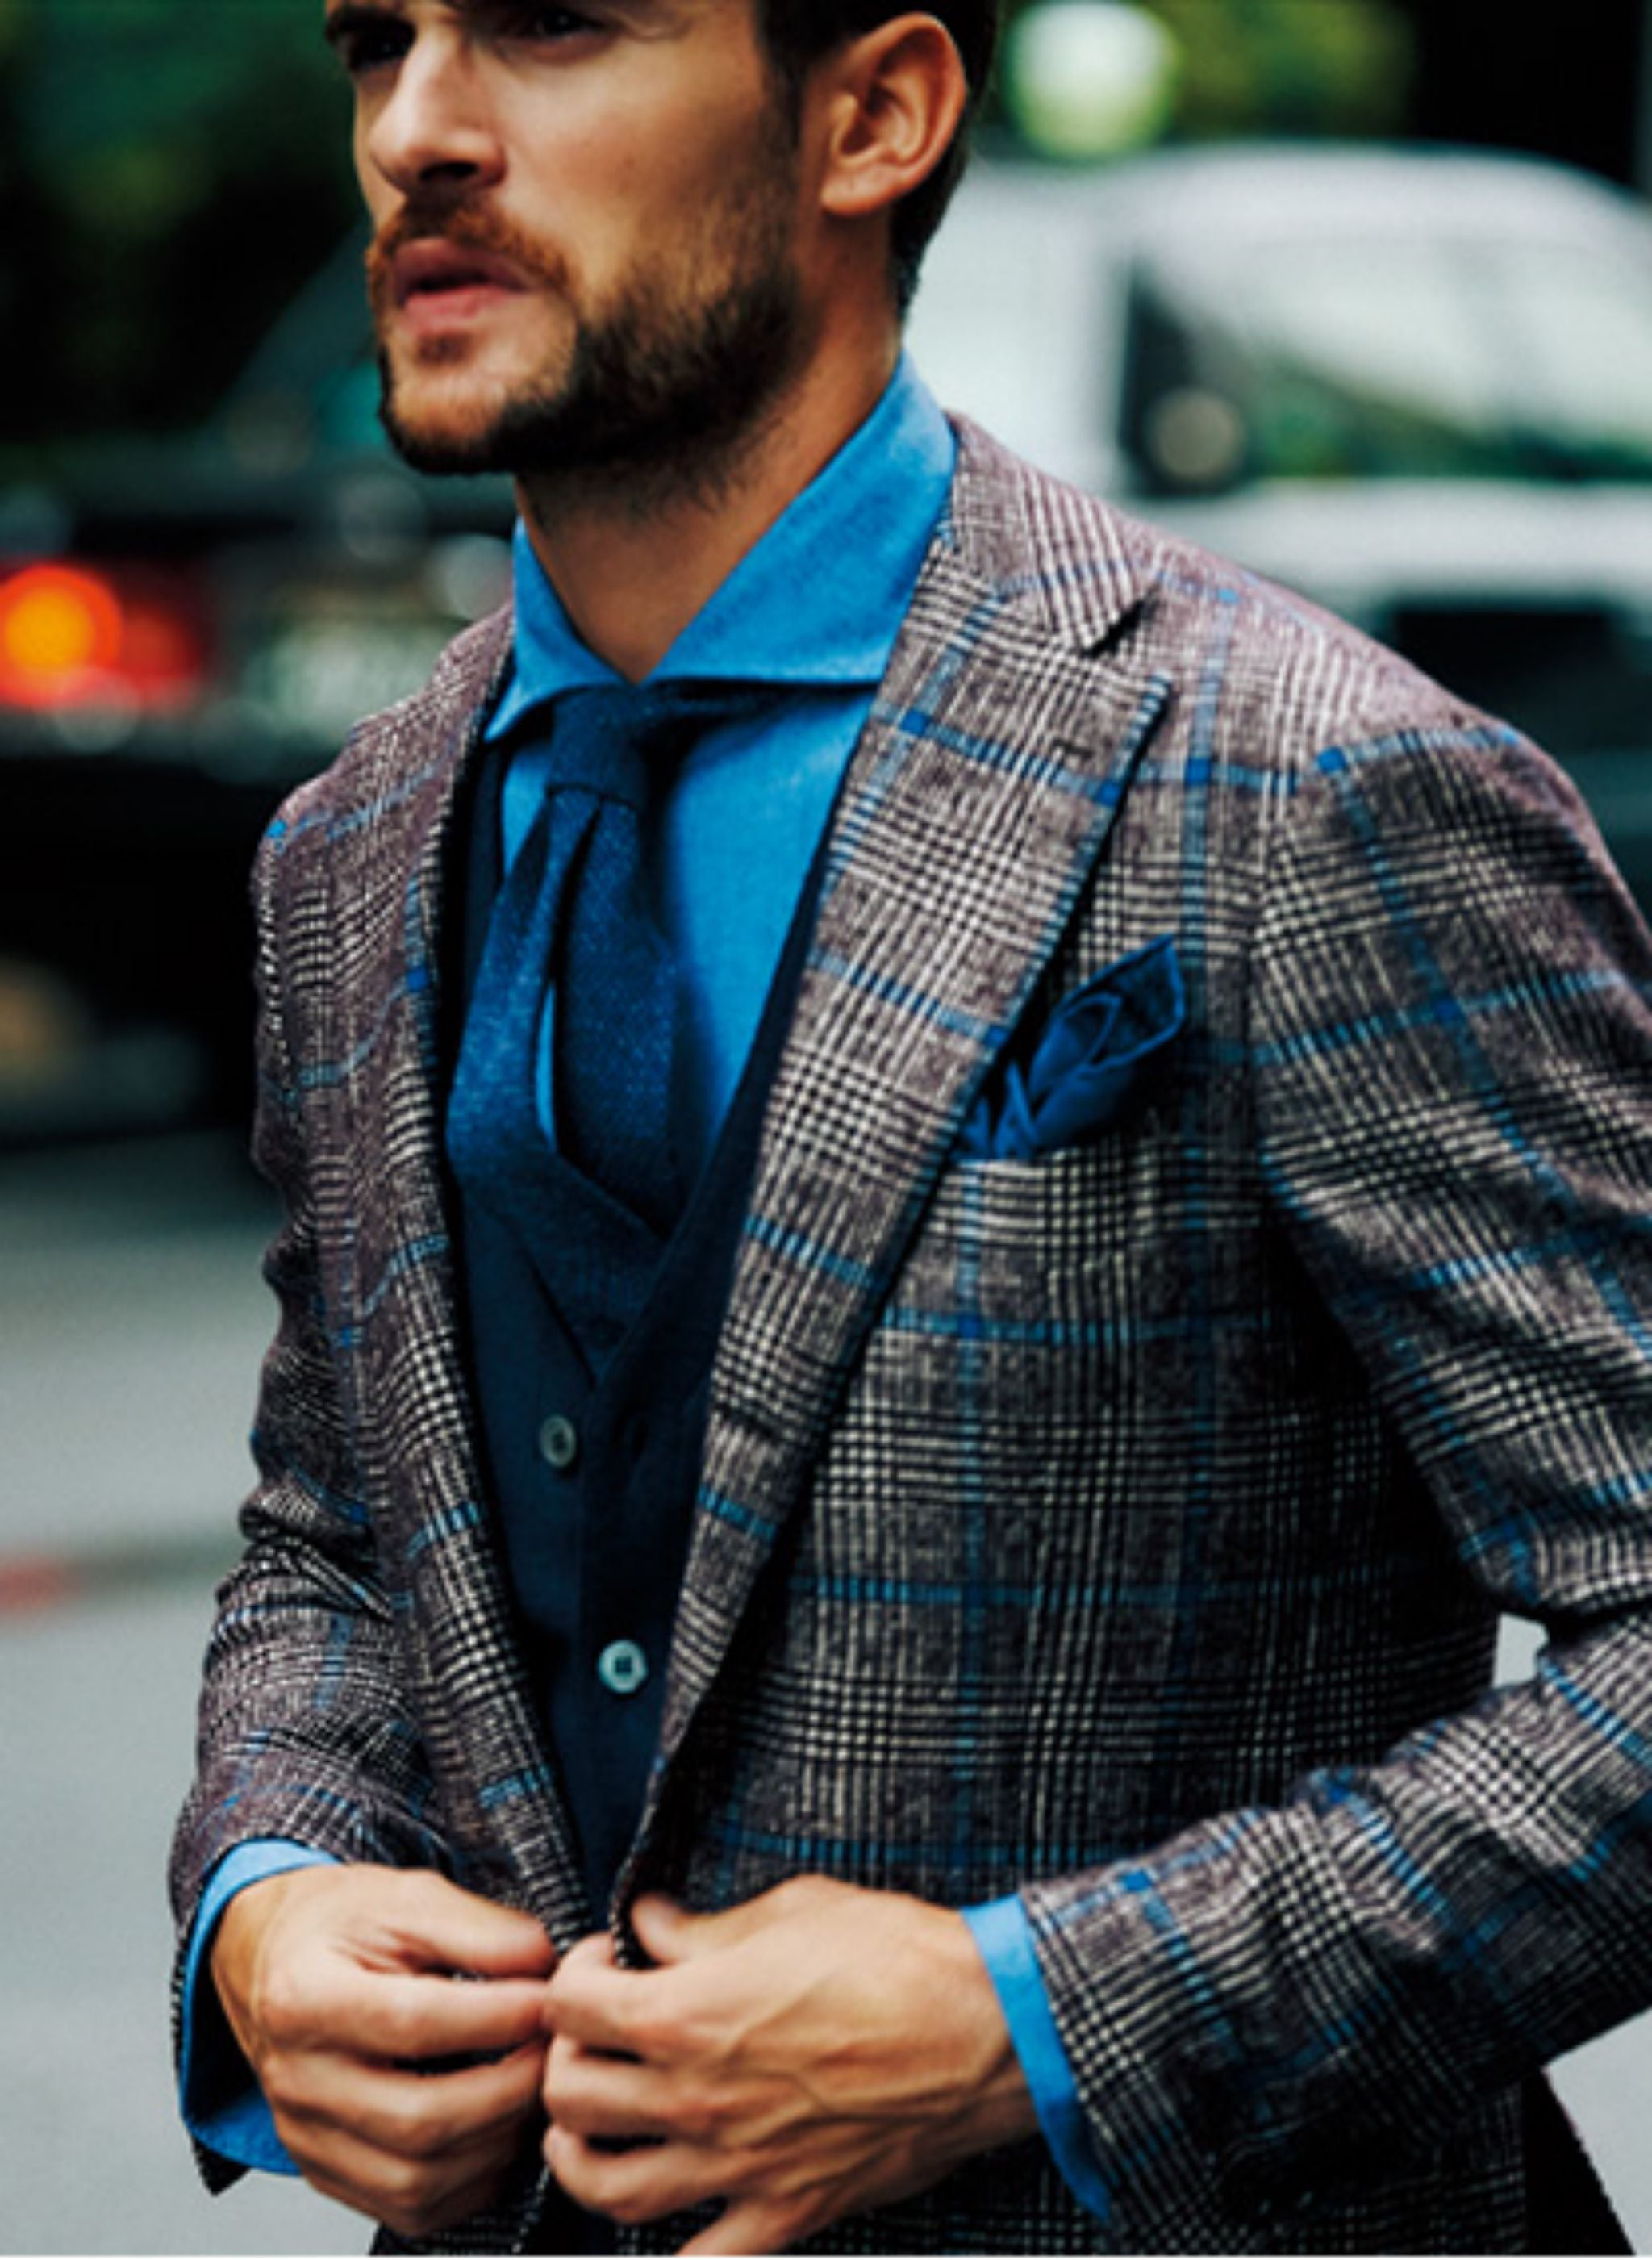 Perfect seasonal layering with a bold sport, cardigan, wool tie and denim shirt.